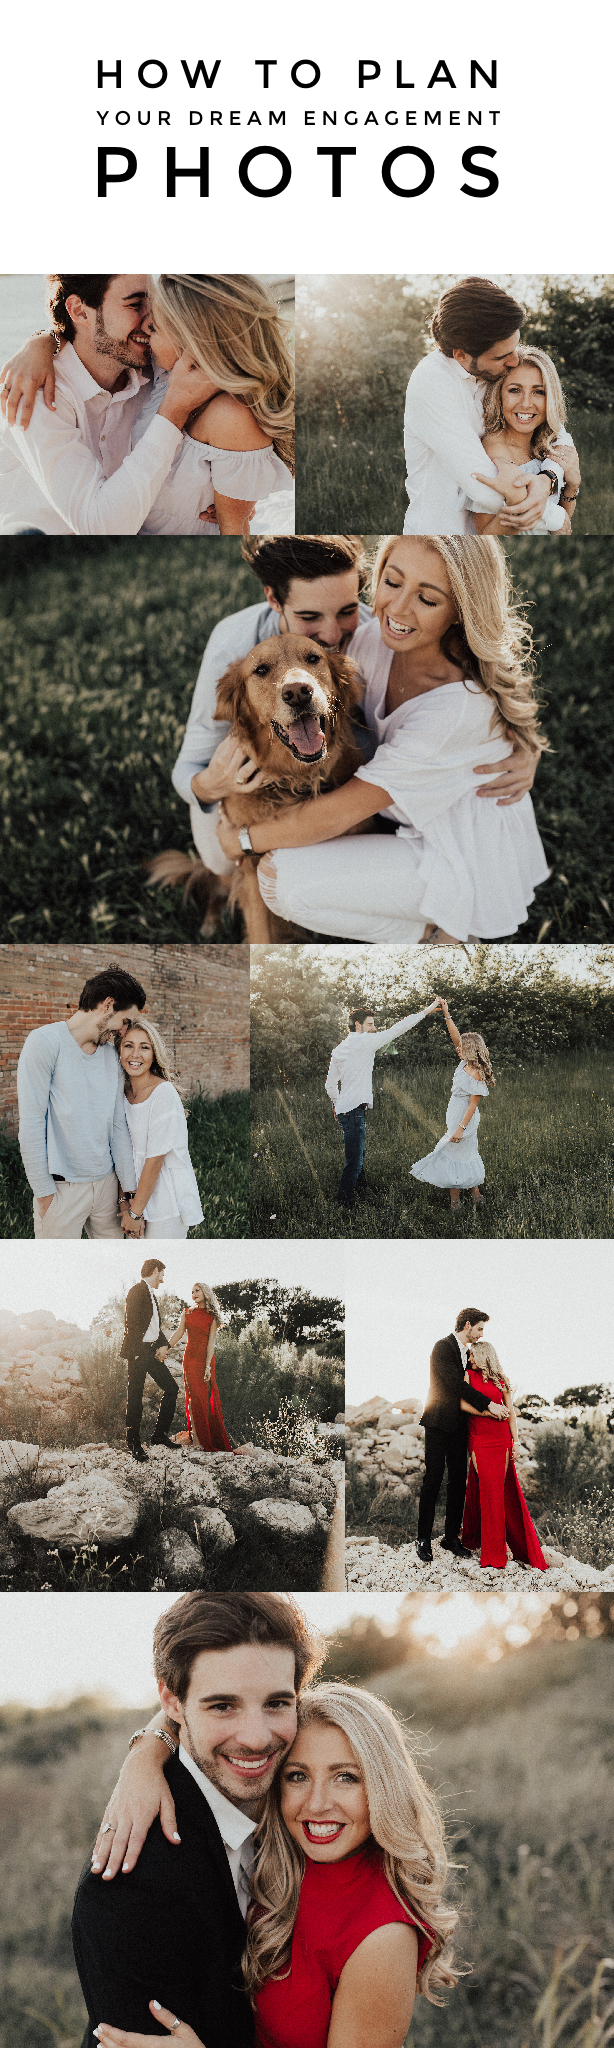 How To Plan Your Dream Engagement Photos